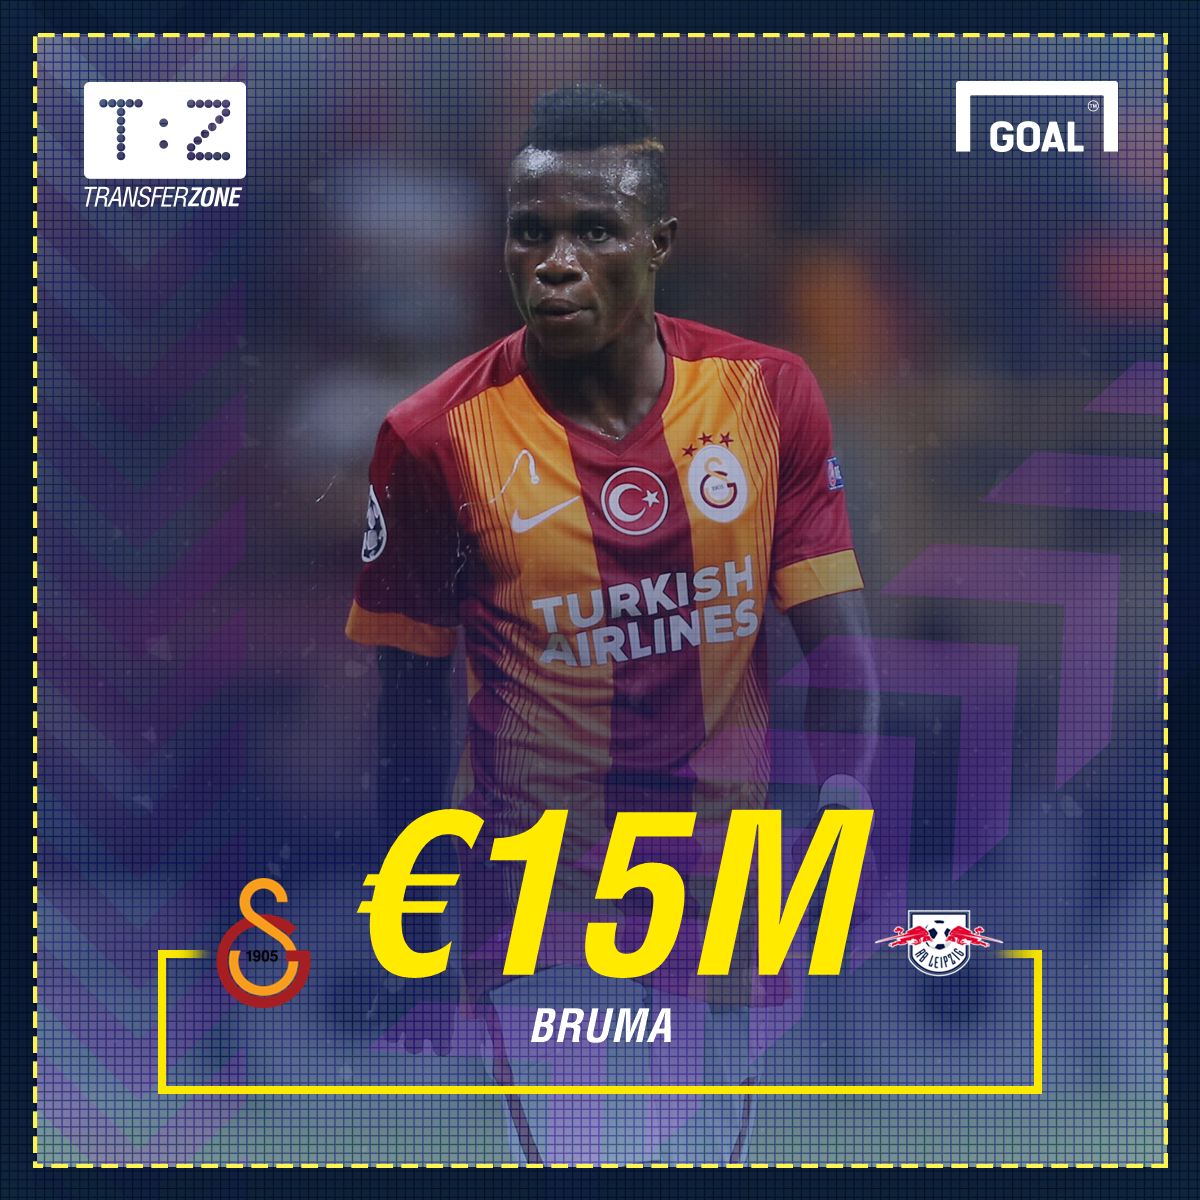 Leipzig signs Portuguese winger Bruma from Galatasaray